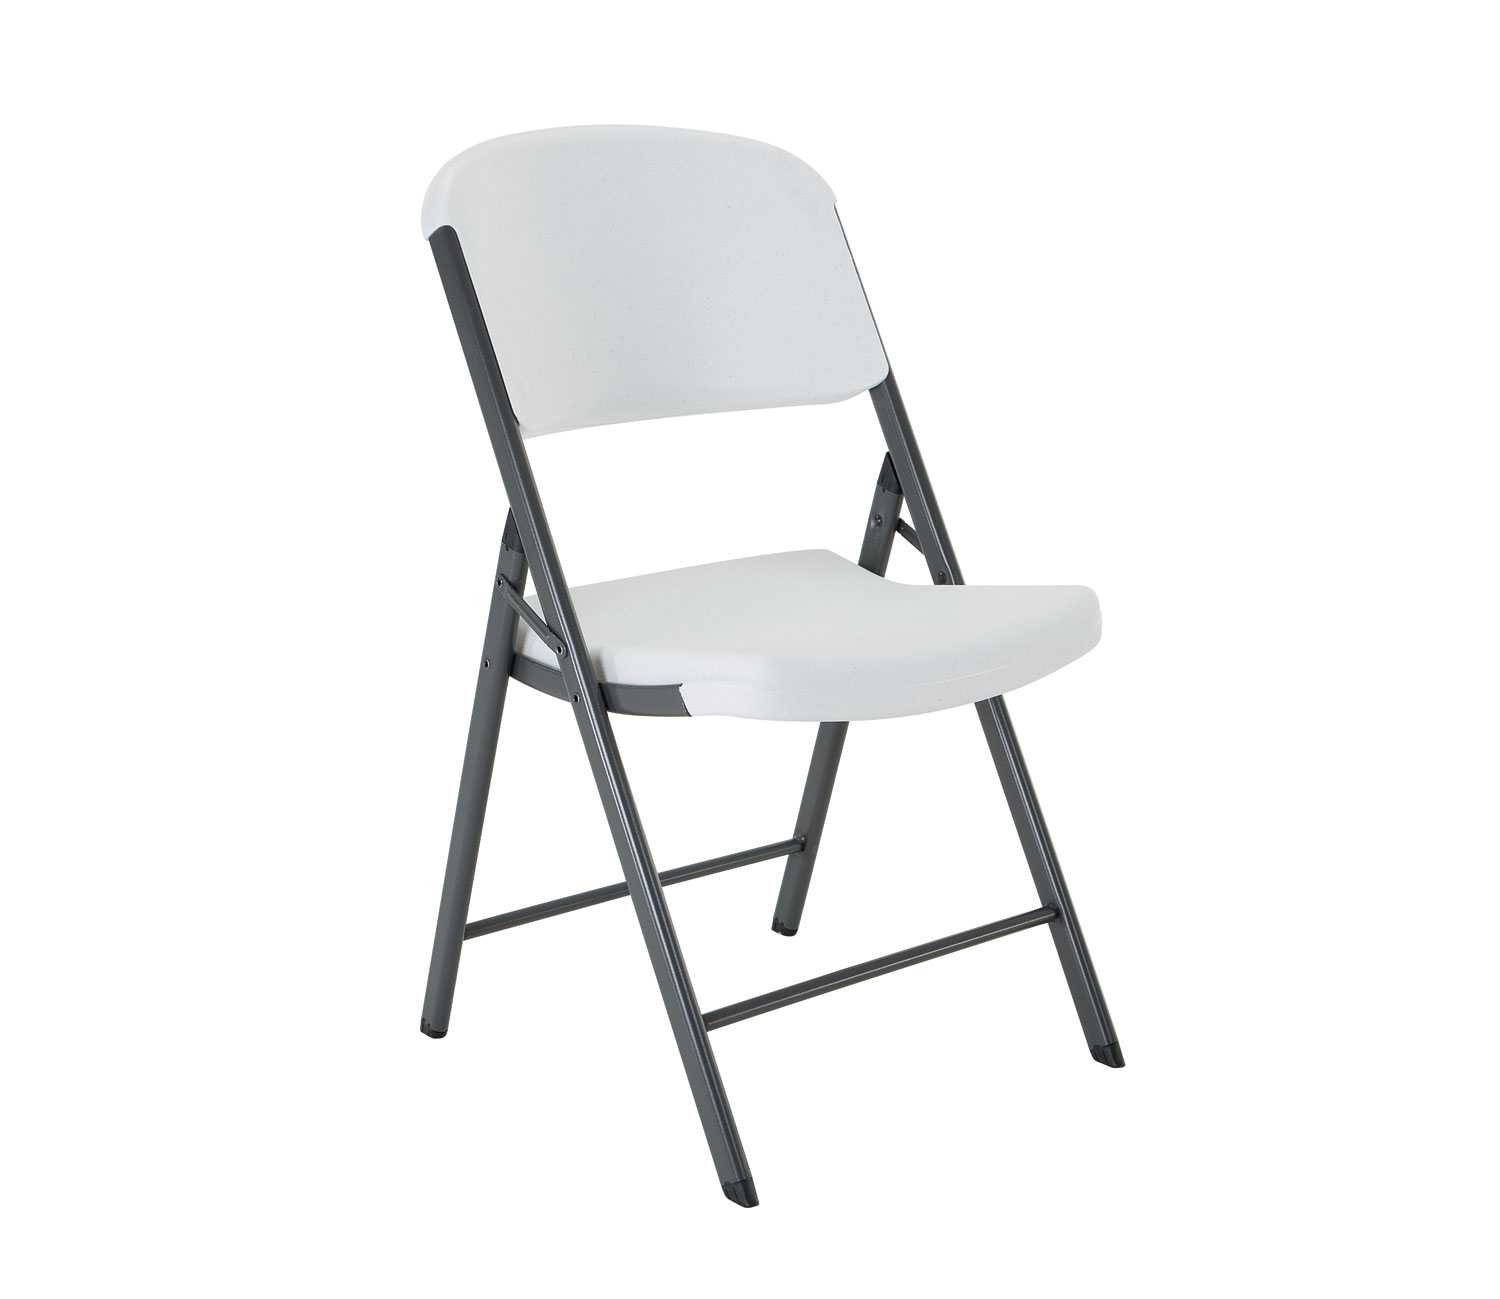 Lifetime 22804 Classic Commercial Folding Chair, White Granite, 1-pack by Lifetime